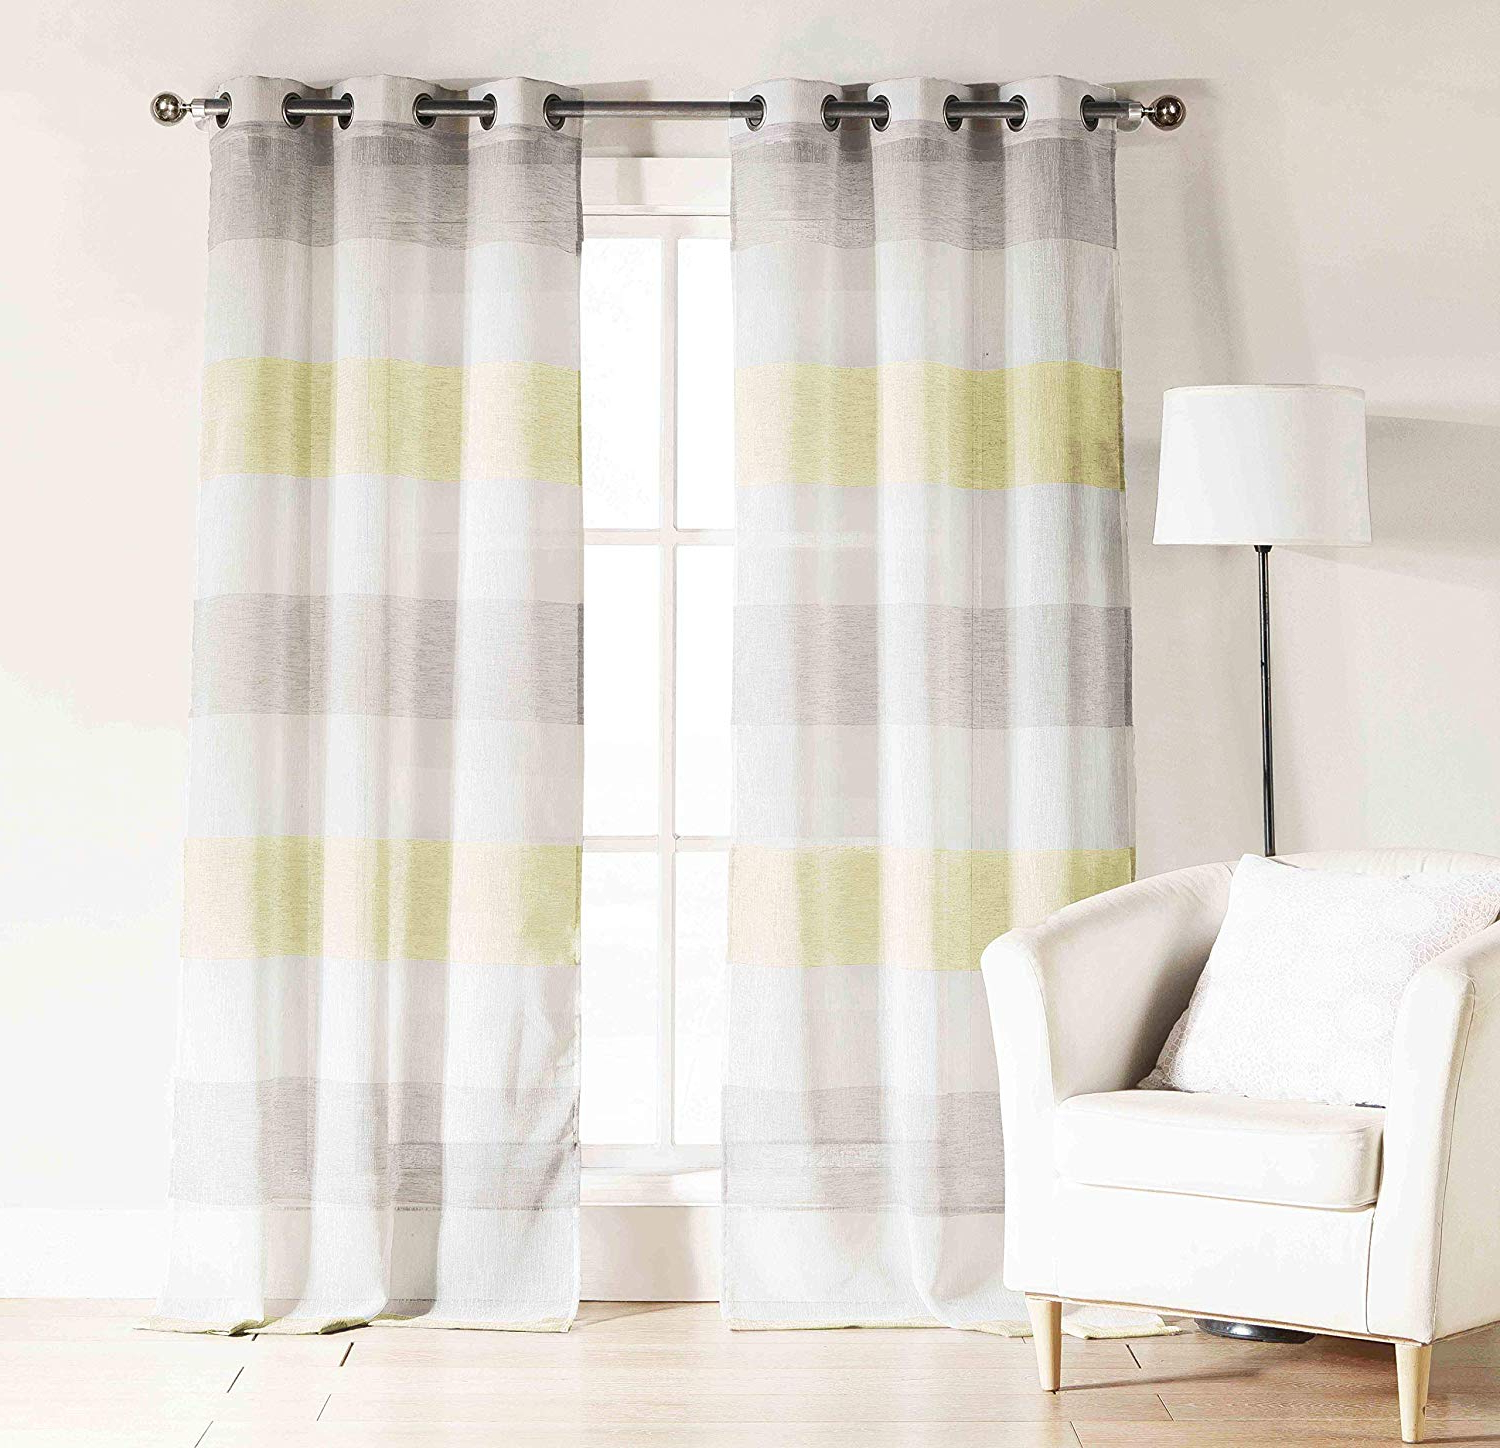 Ombre Stripe Yarn Dyed Cotton Window Curtain Panel Pairs Intended For Popular Bathroom And More Sheer Window Curtain Panel Pair: Rod Pocket, Cabana  Stripe, 76W X 84L (Yellow Gray) (View 15 of 20)